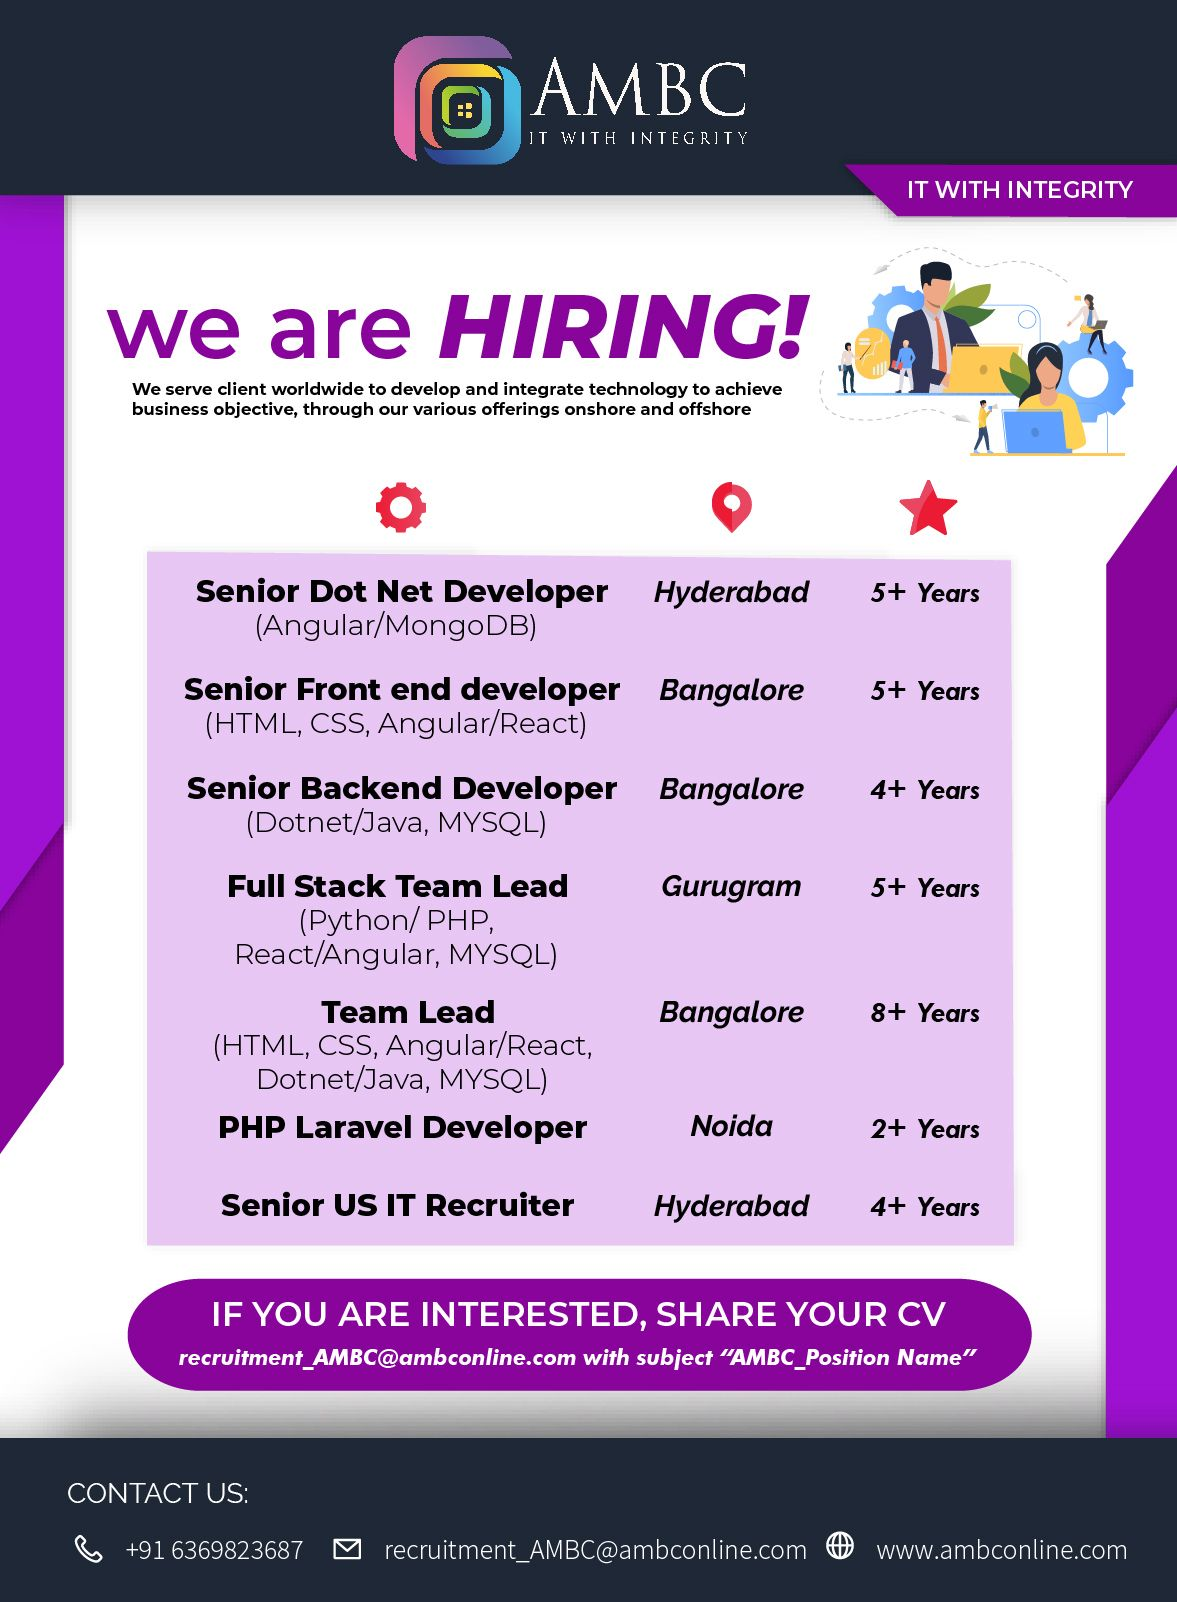 We are hiring for the following positions. Eligible